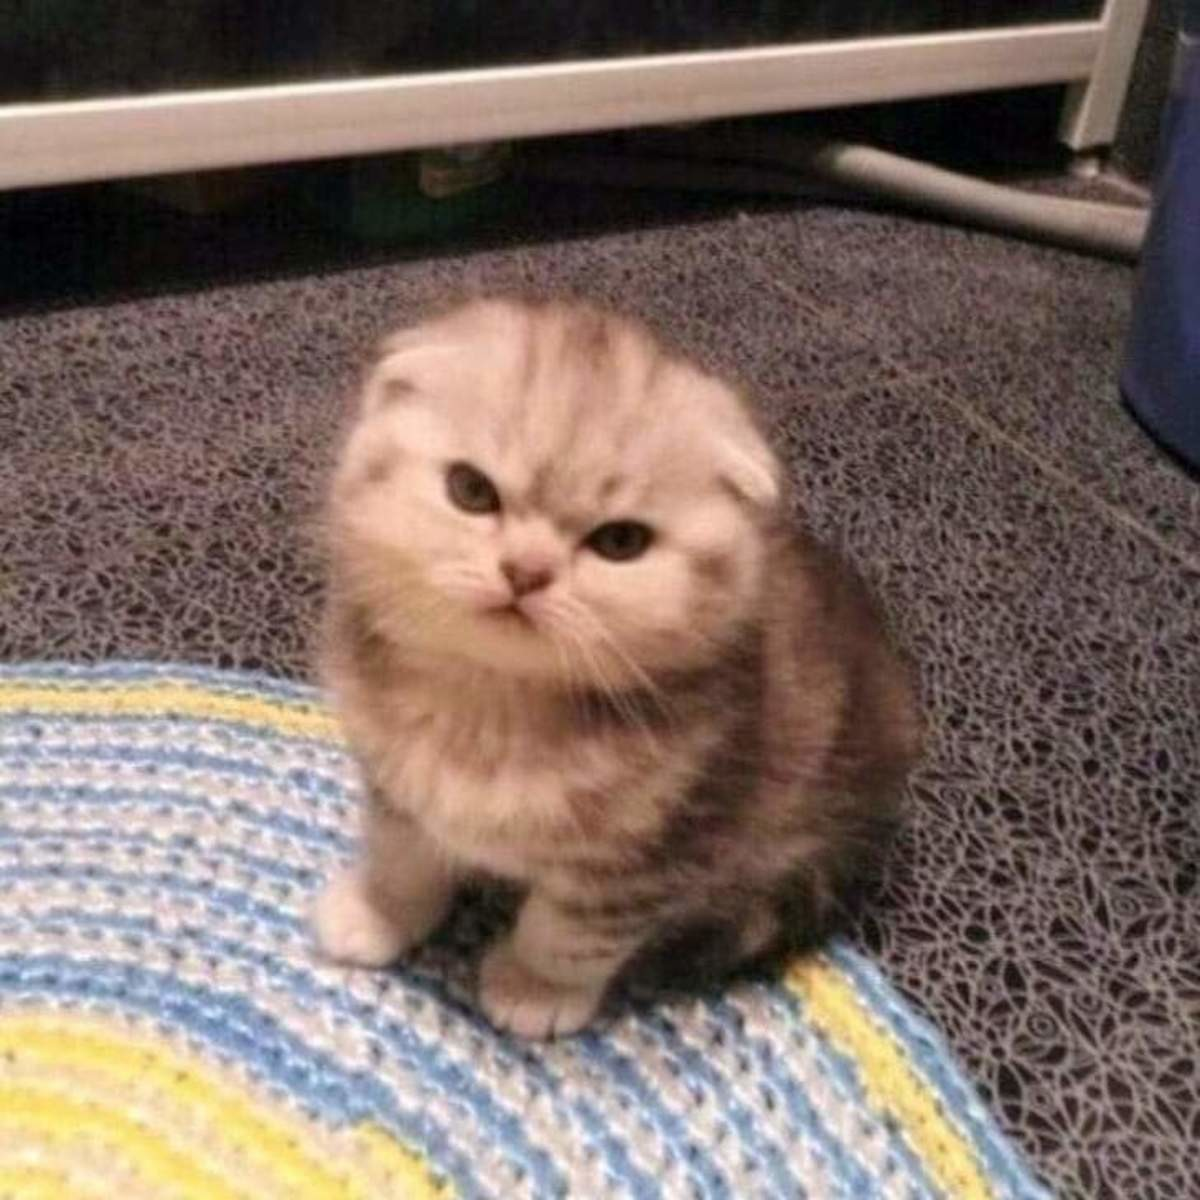 """""""..where did you put my catnip? >:c"""". join list: DoseOfCuteness (542 subs)Mention Clicks: 64292Msgs Sent: 758486Mention History.. Little looks angry about something"""